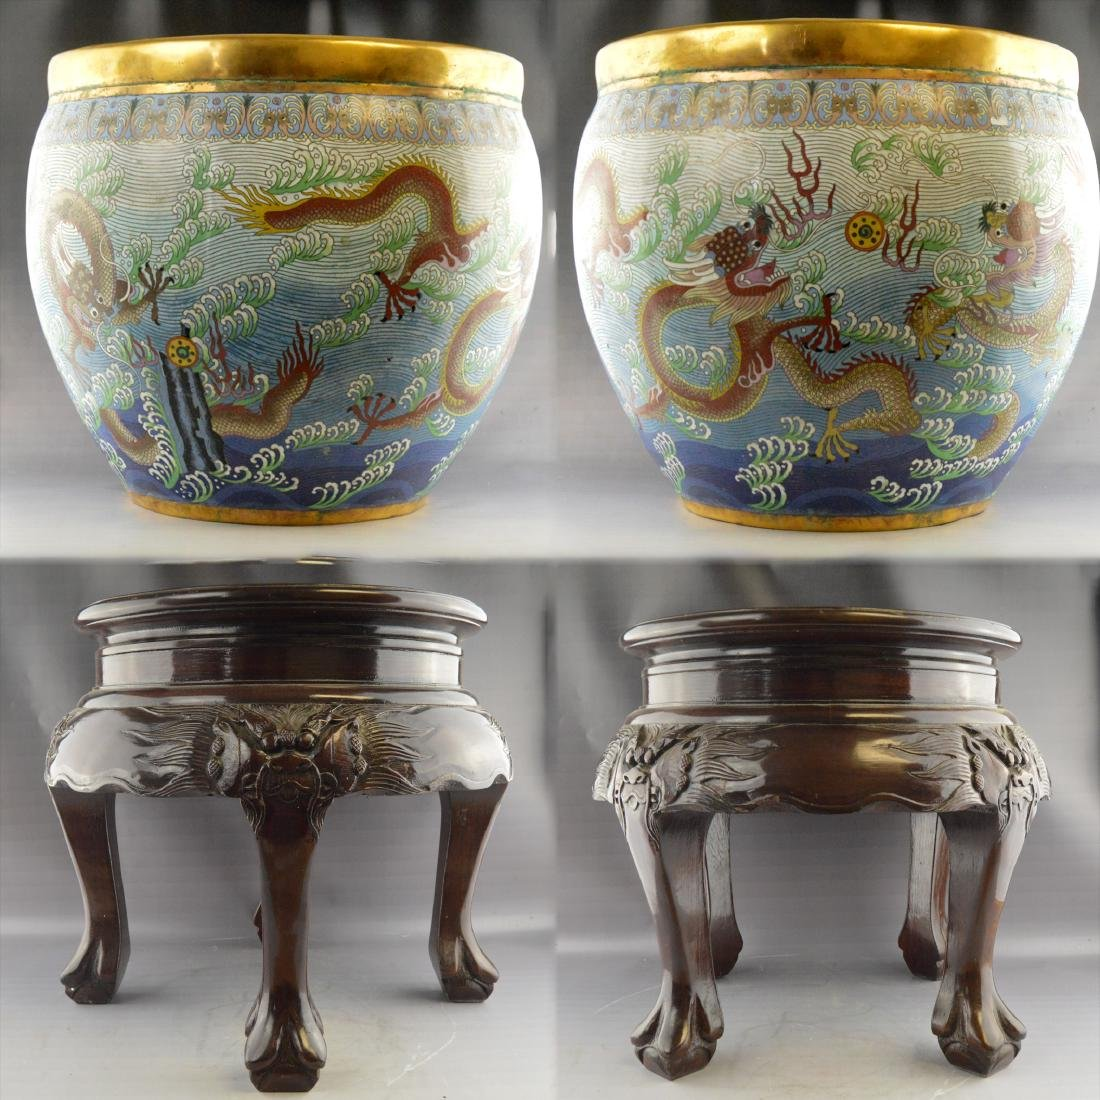 Nine-Dragon Cloisonne Jar Pair